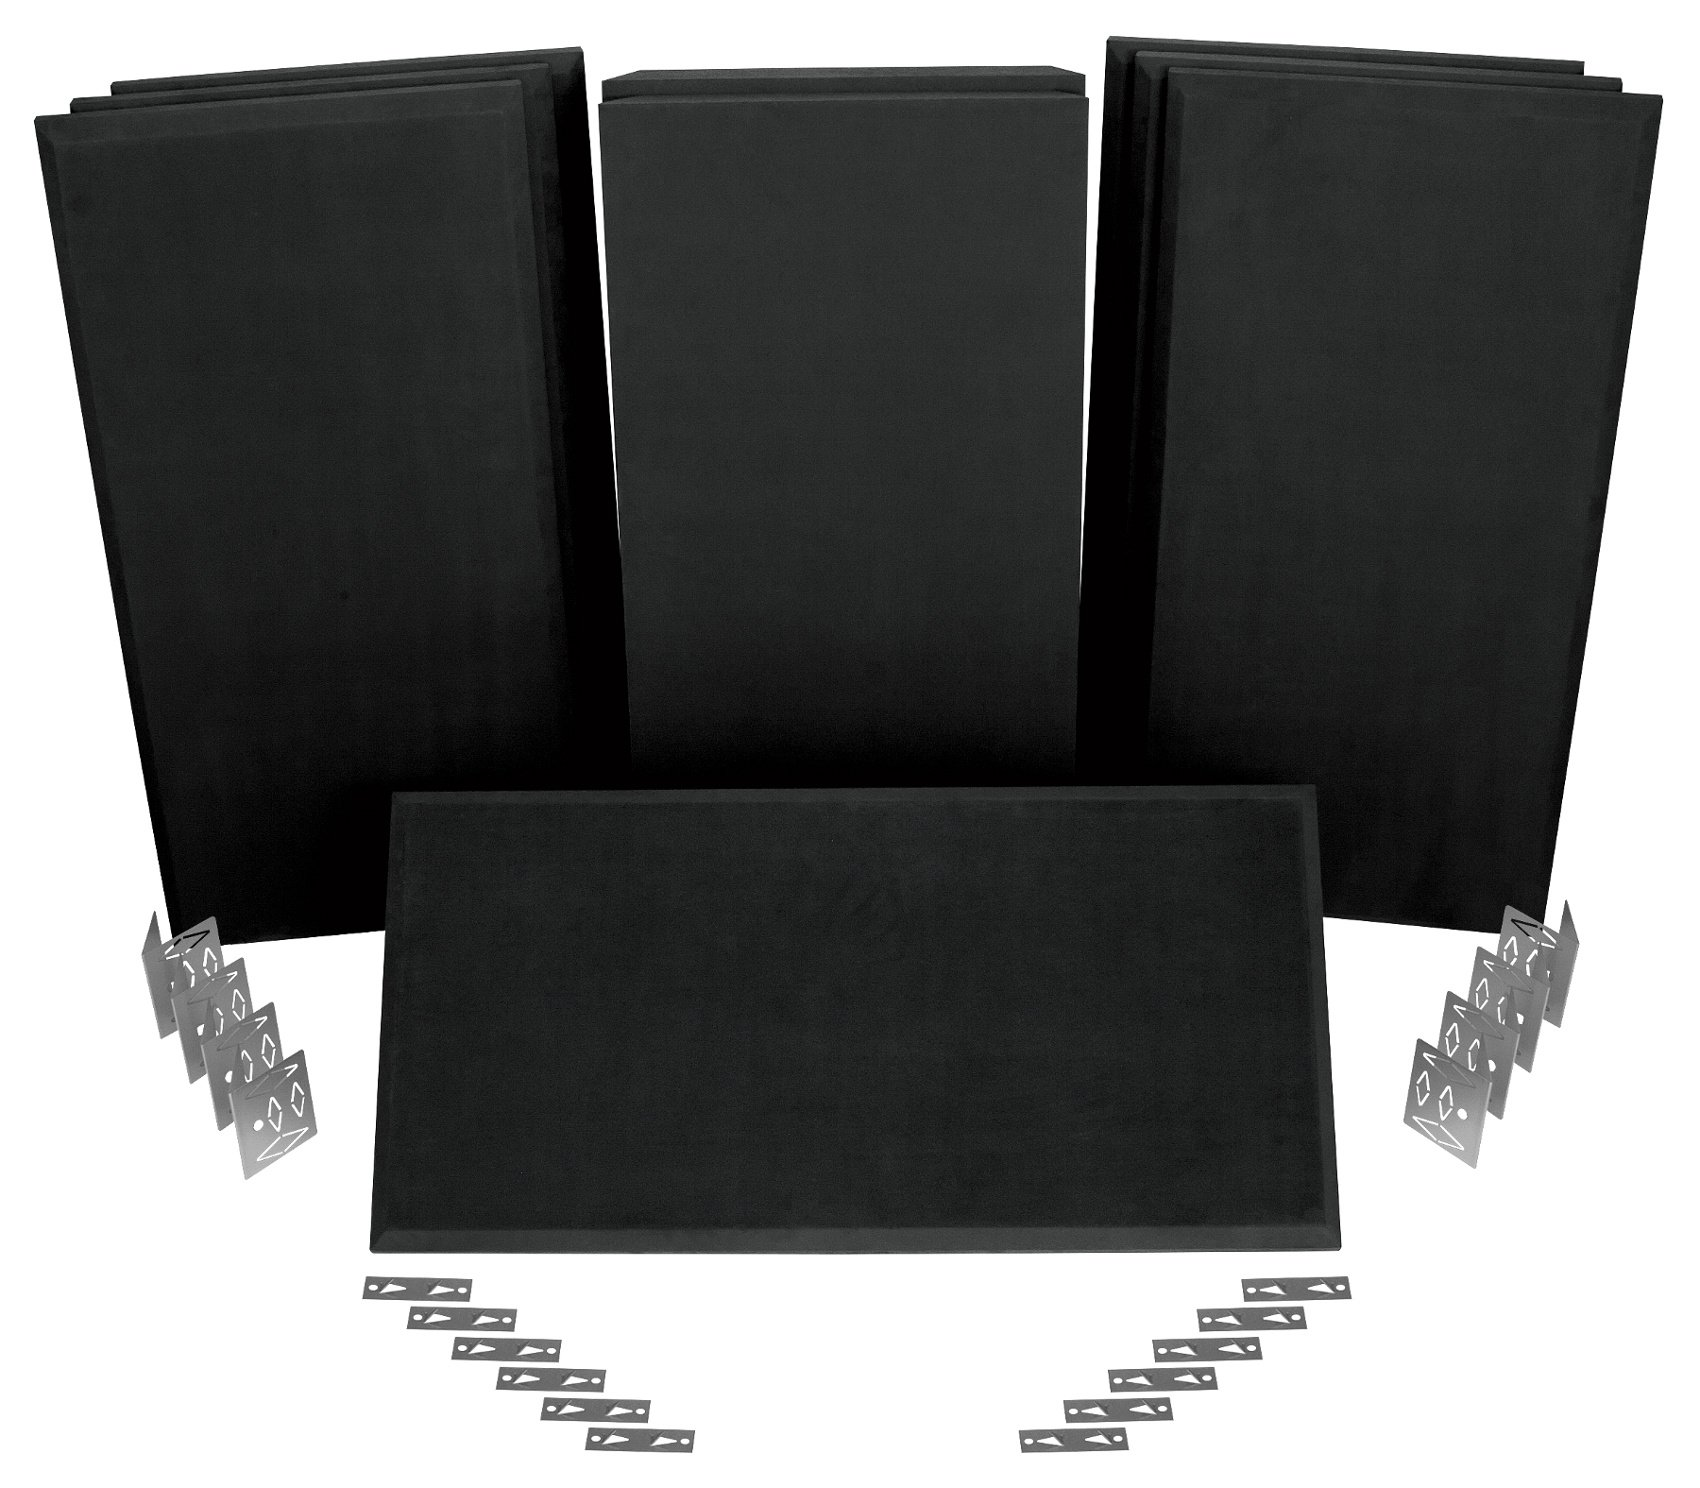 All-In-One Acoustical Treatment System for Rooms 8x10 ft to 12x12 ft